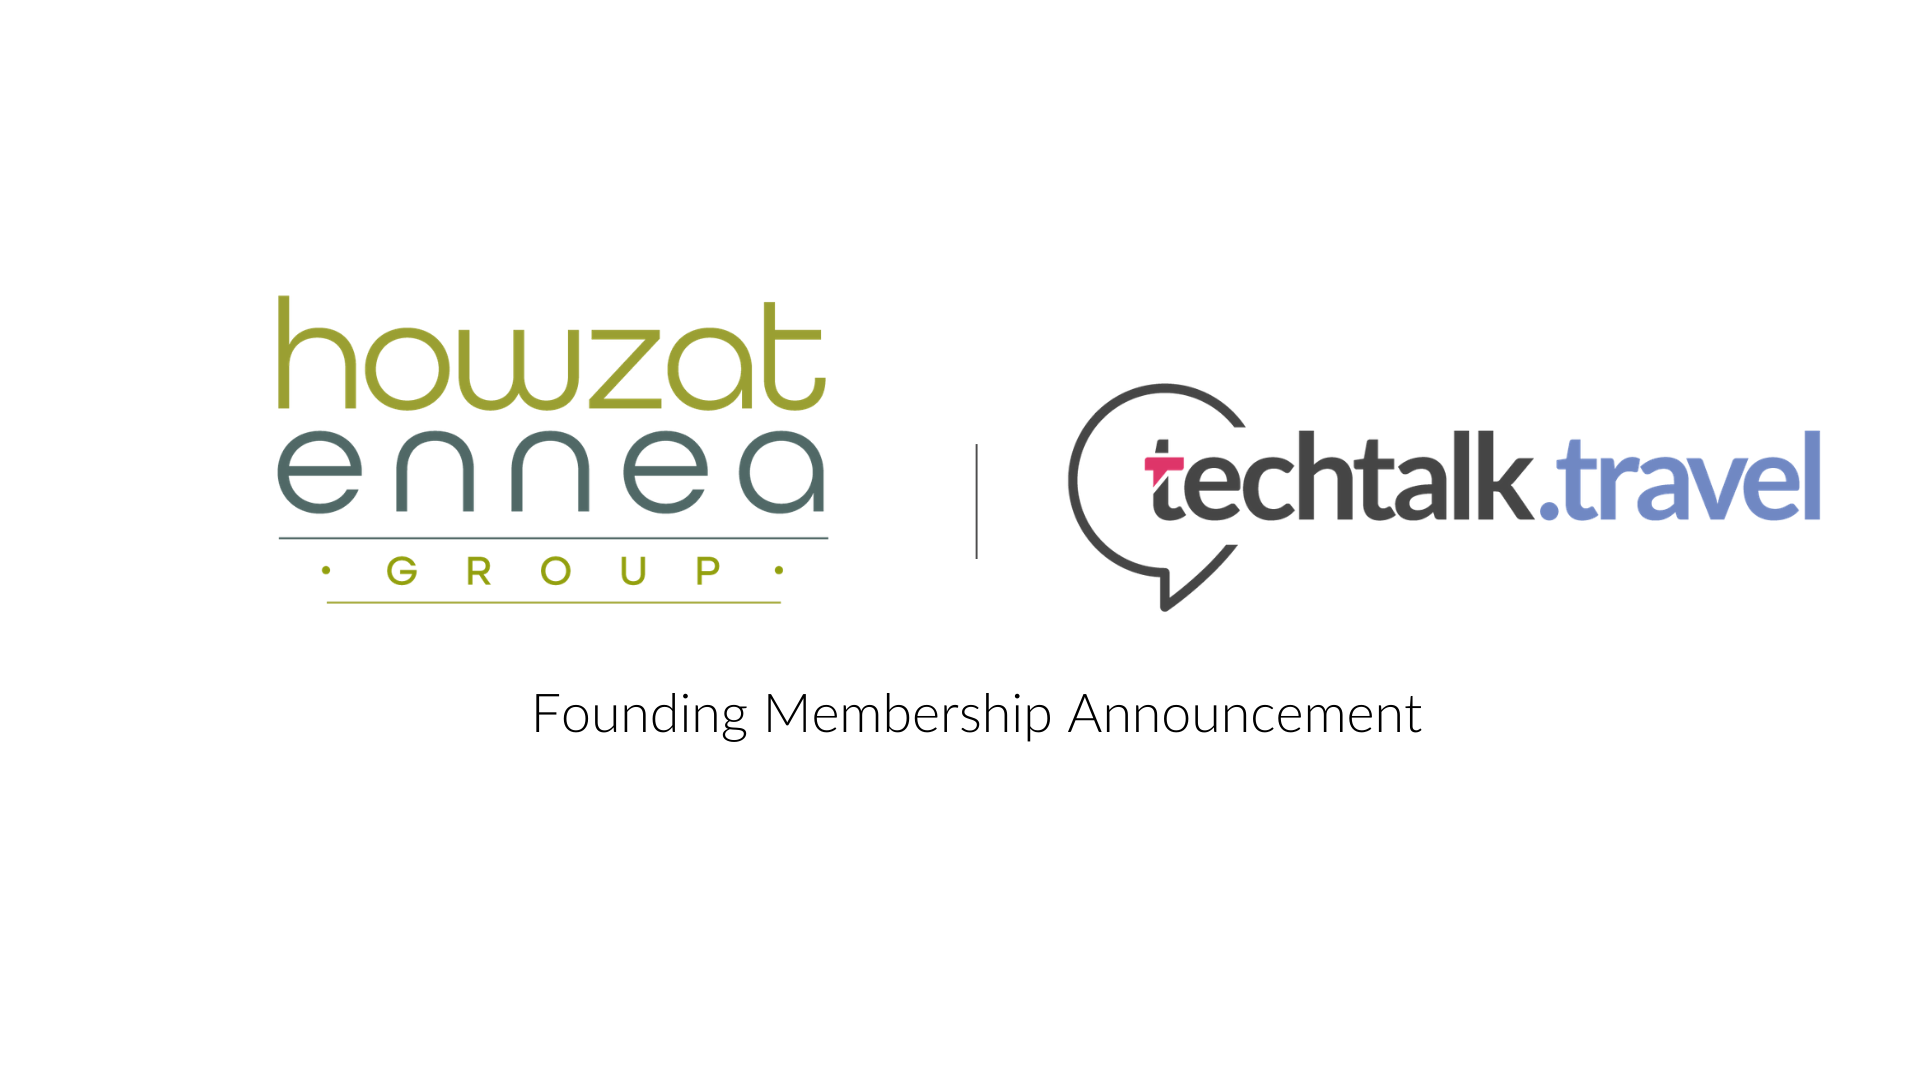 Founding Membership Announcement l HOWZAT ennea Group